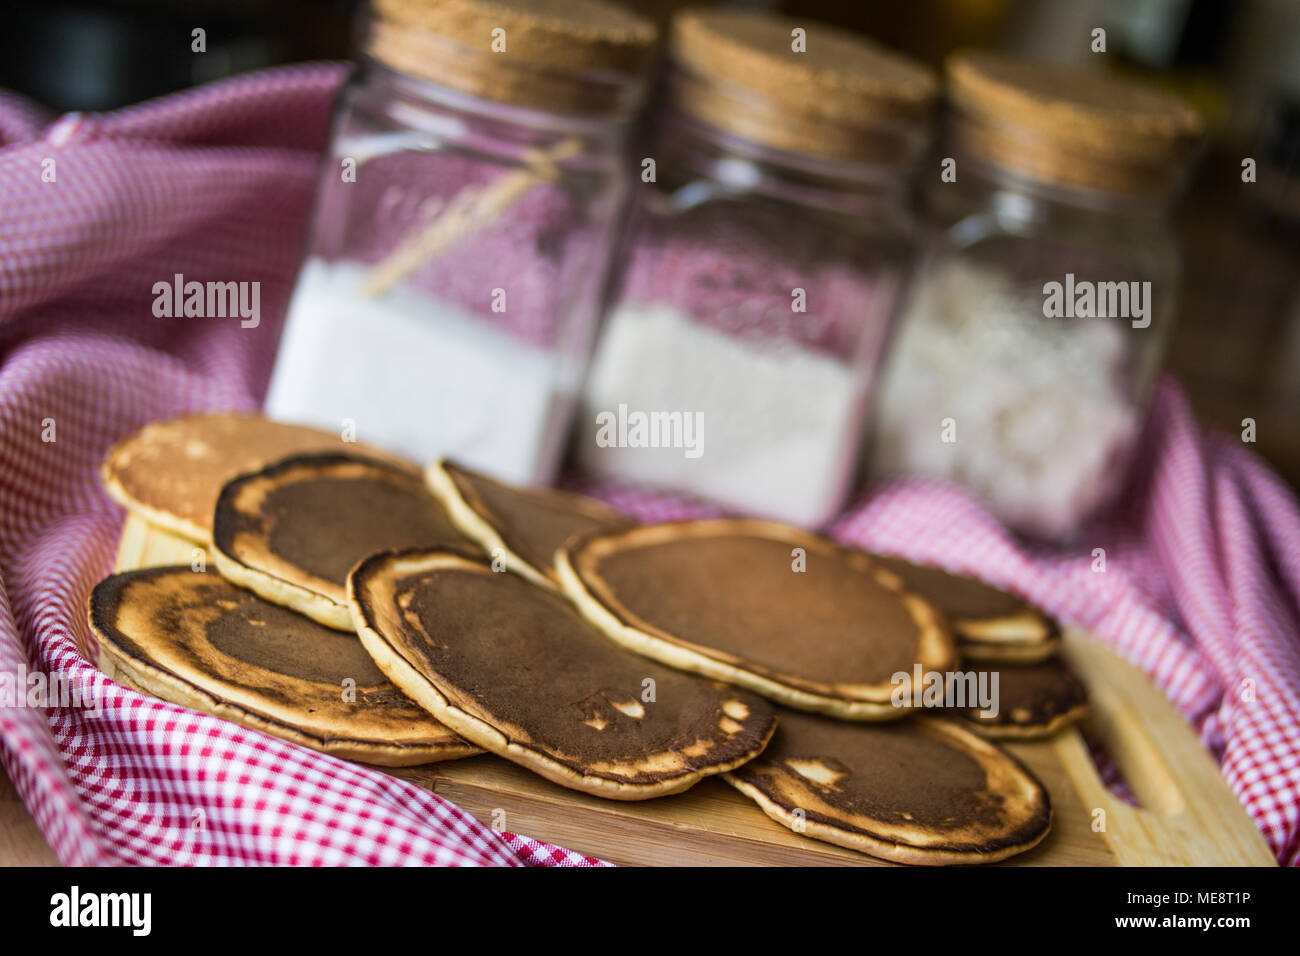 Stack of plain Pancakes on wooden surface - Stock Image